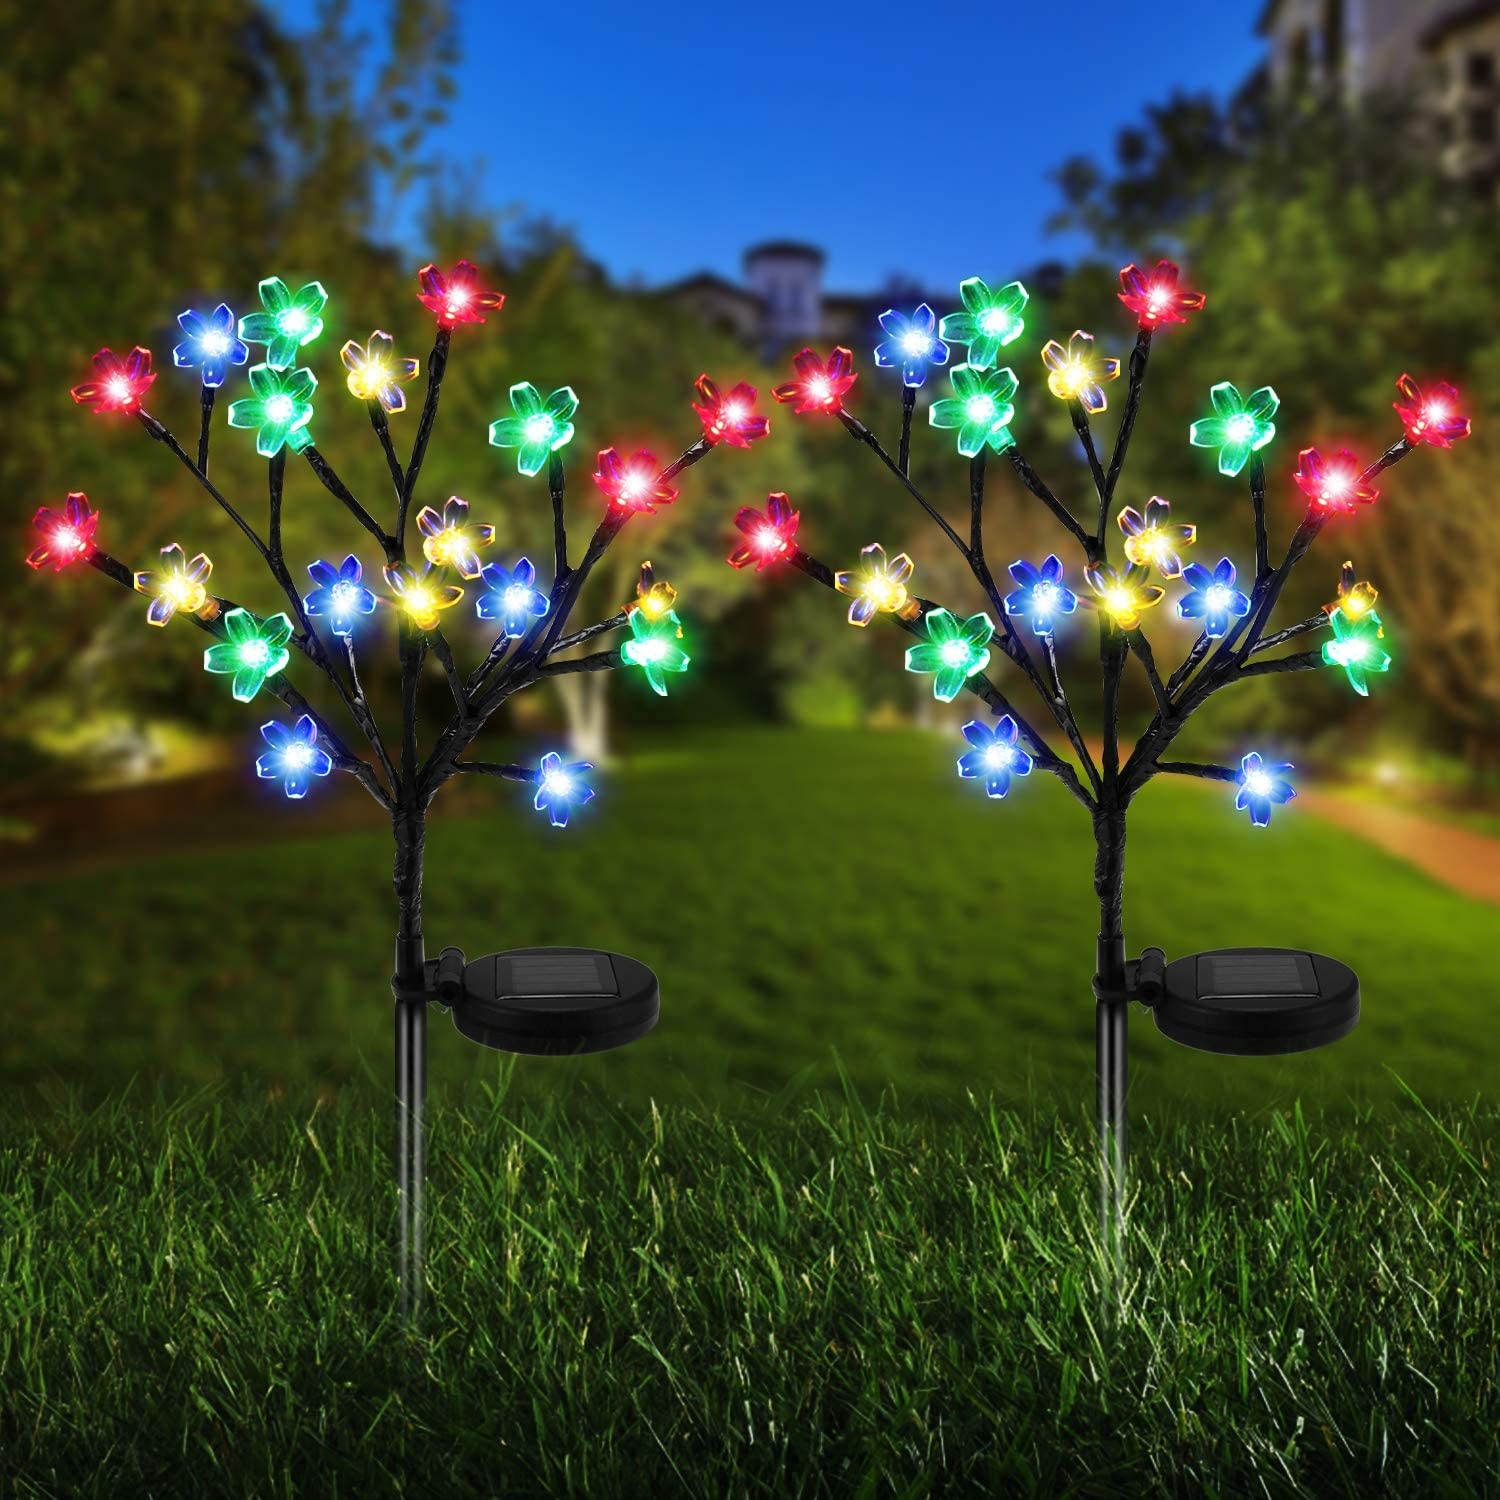 Solar Lights Outdoor - New Upgraded Solar Garden Lights, 2 Pack Waterproof Colored Fairy Landscape Tree Solar Lights for Pathway Patio Yard Deck Walkway Christmas Decoration(20 LED)